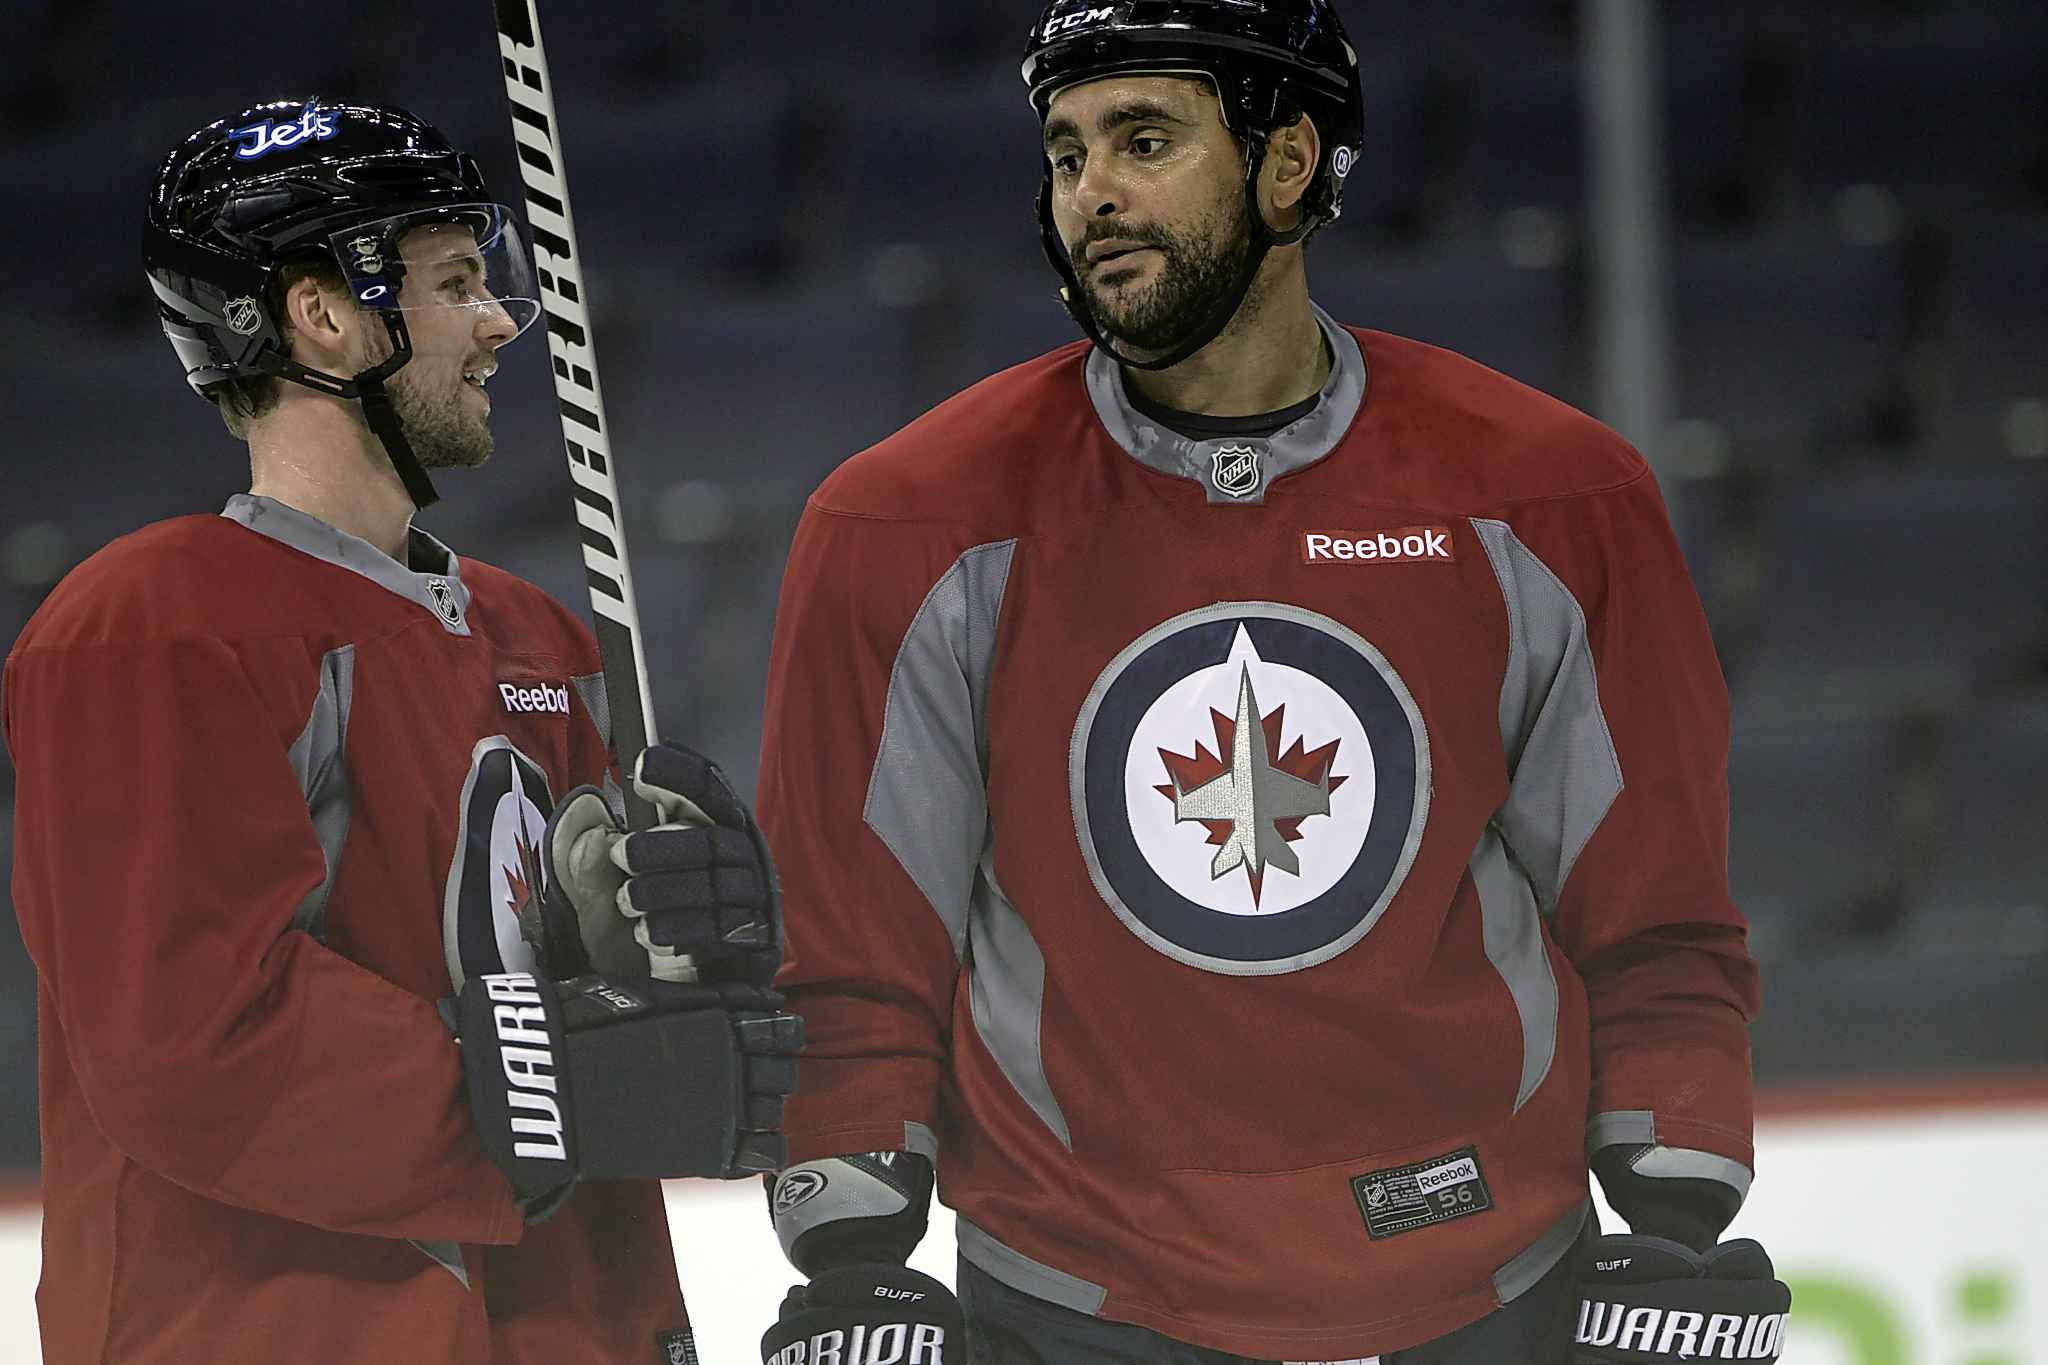 Josh Morrissey (left) says Byfuglien was a mentor to him in his first season with the Jets in 2016. (Joe Bryksa / Winnipeg Free Press files)